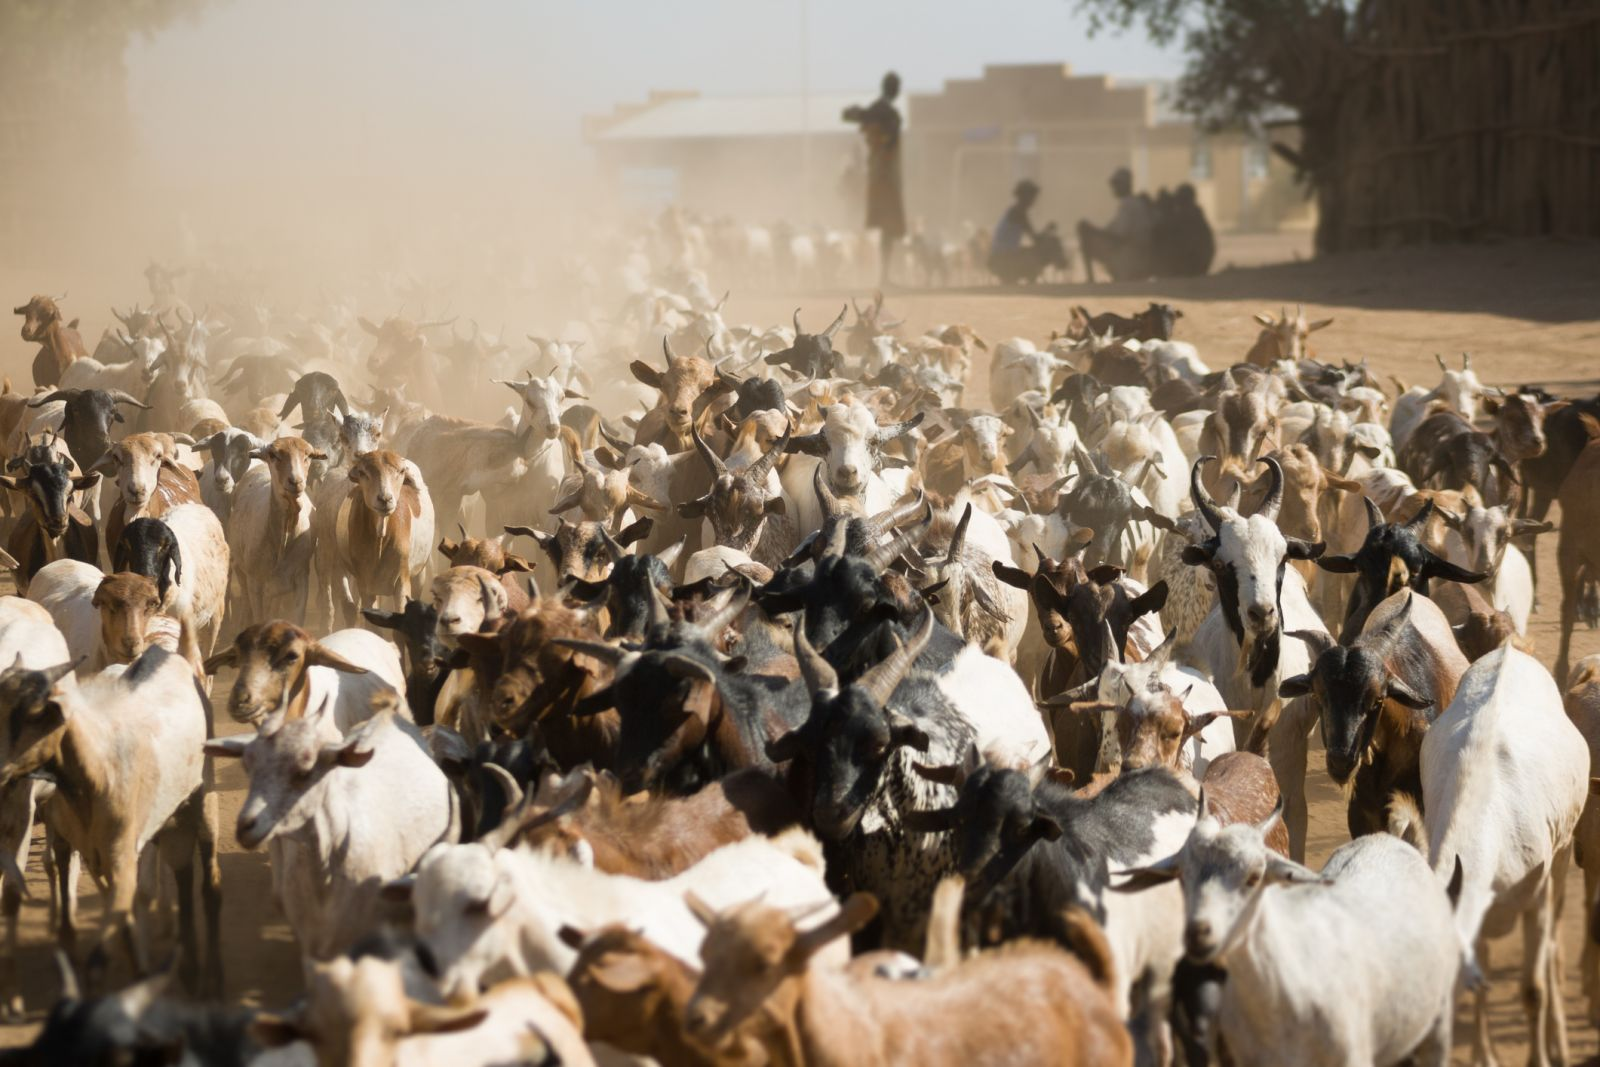 Goats on a dusty road (Istock image)